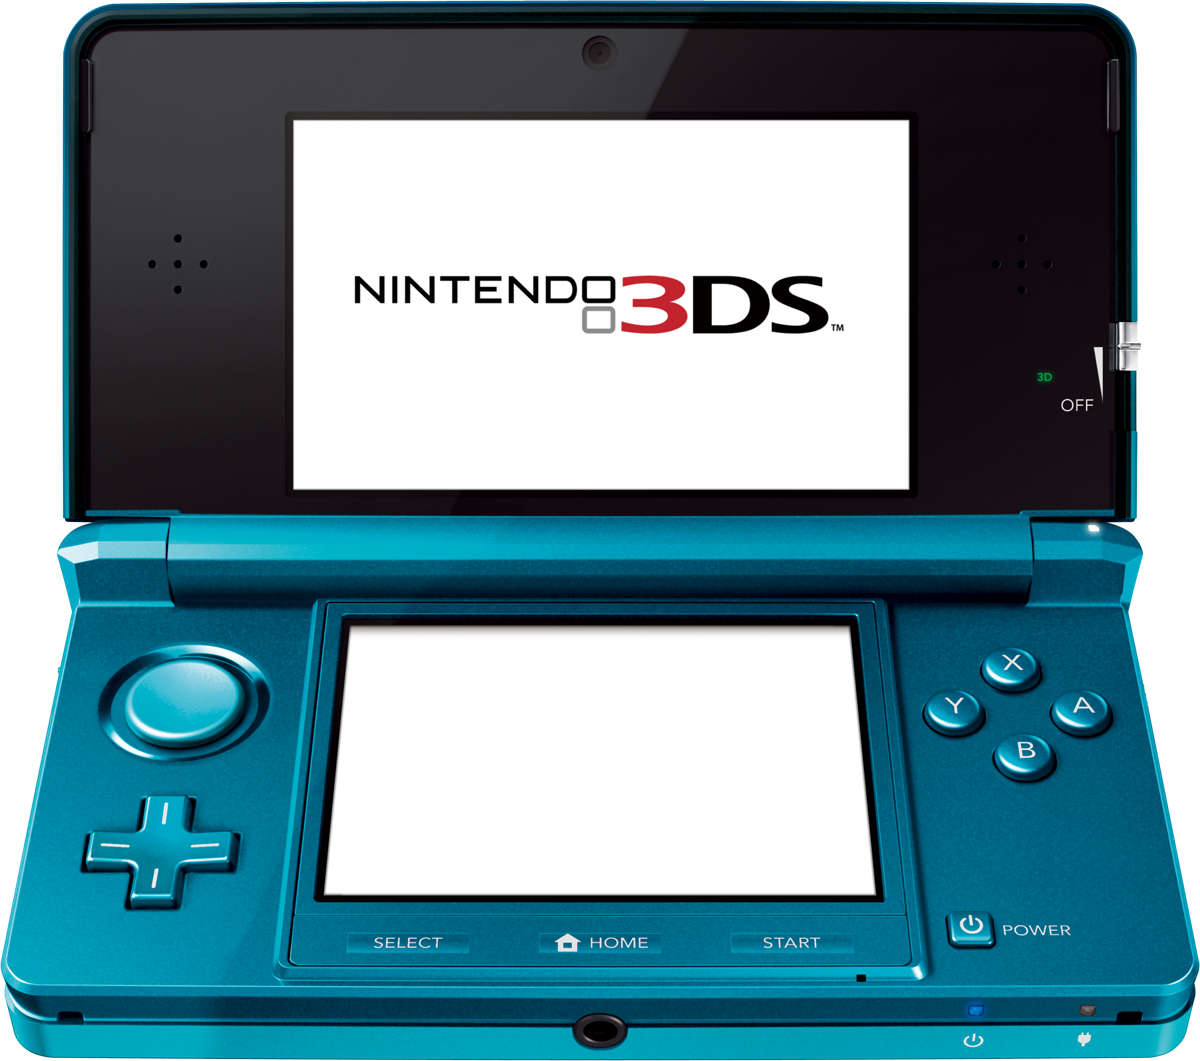 Nintendo 3ds Games 2020.Nintendo 3ds To Be Supported Through 2020 According To